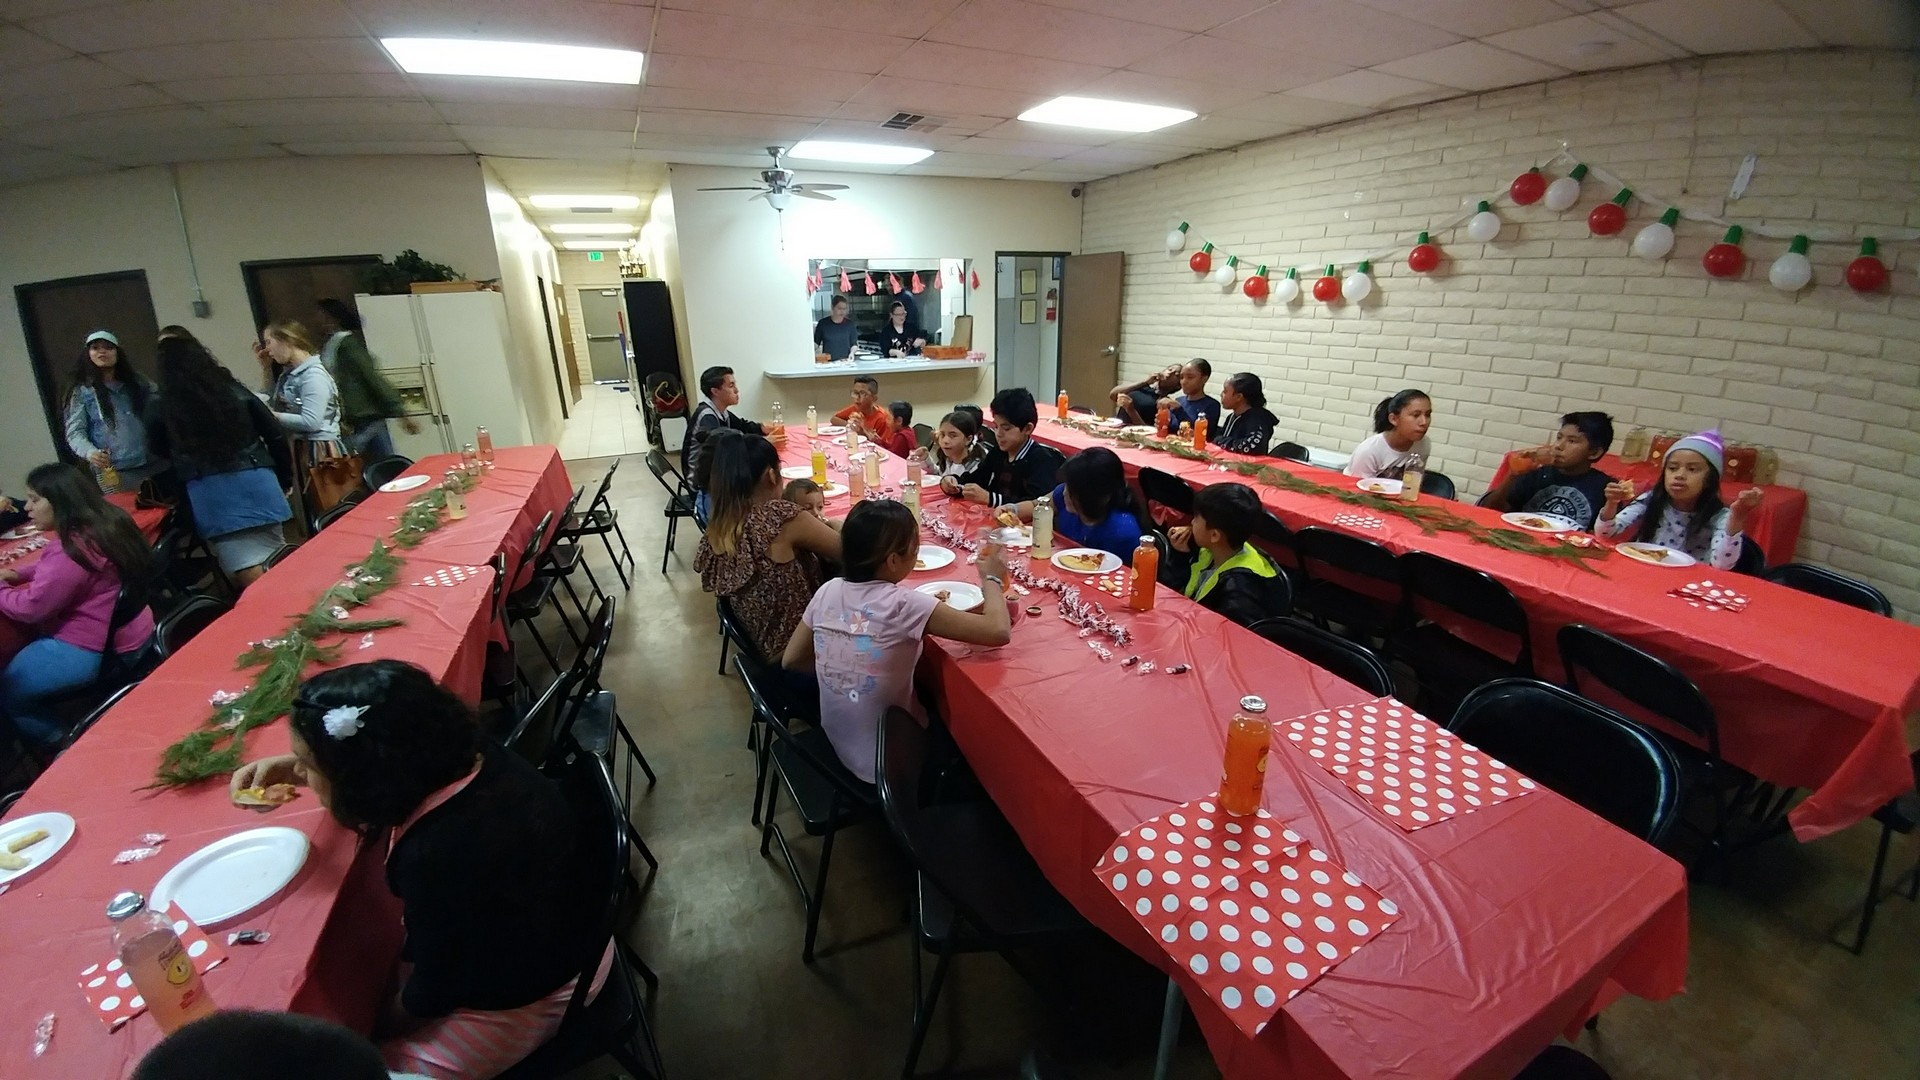 Bus Christmas Party   December 16, 2017